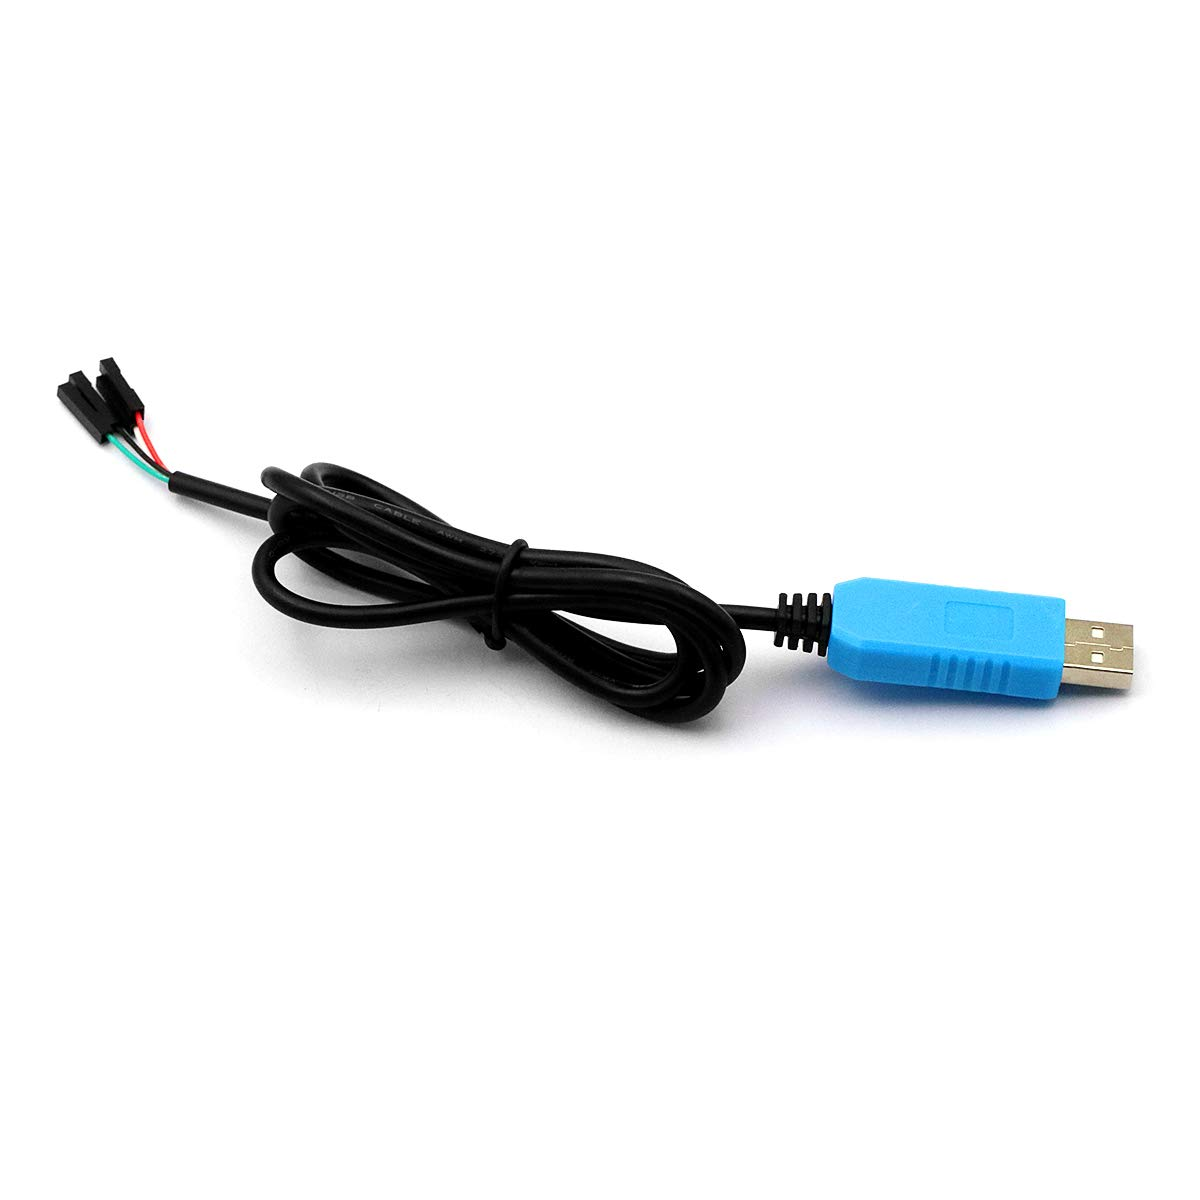 DaFuRui 3Pack PL2303TA USB to TTL Serial Cable Debug Console Cable